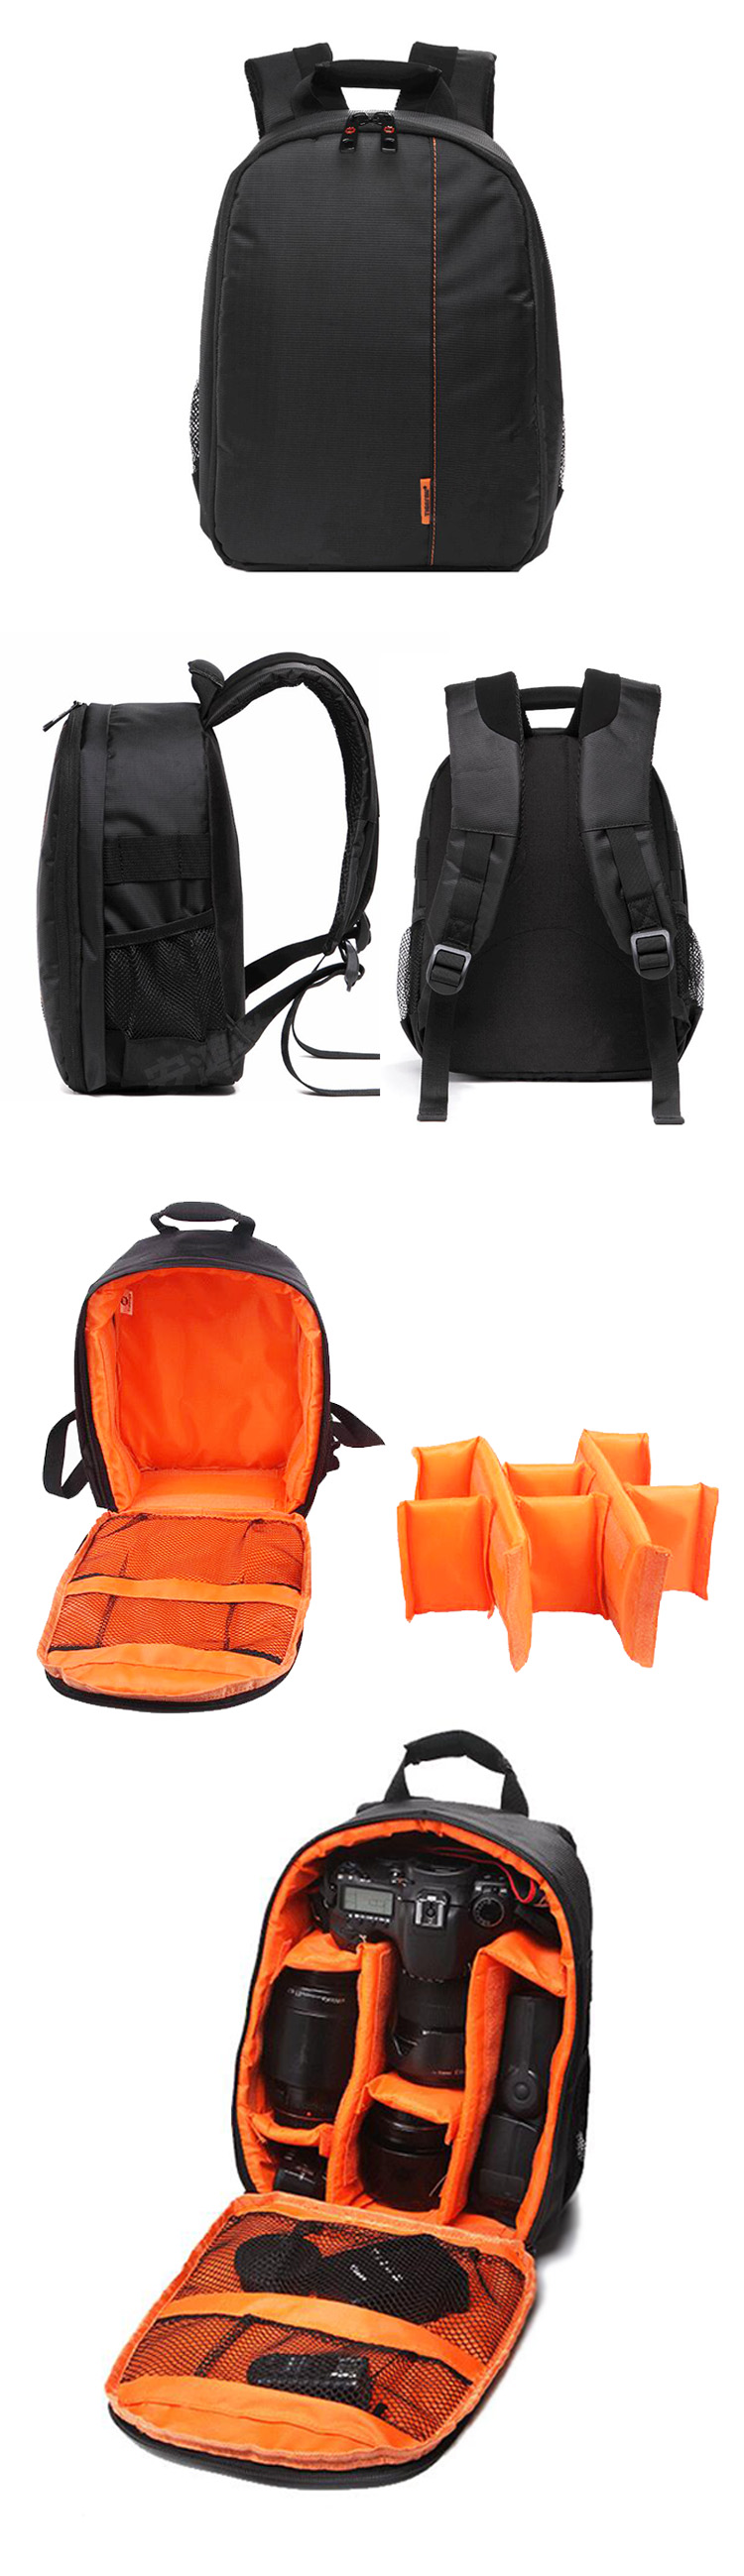 High Quality waterproof camera backpack bag